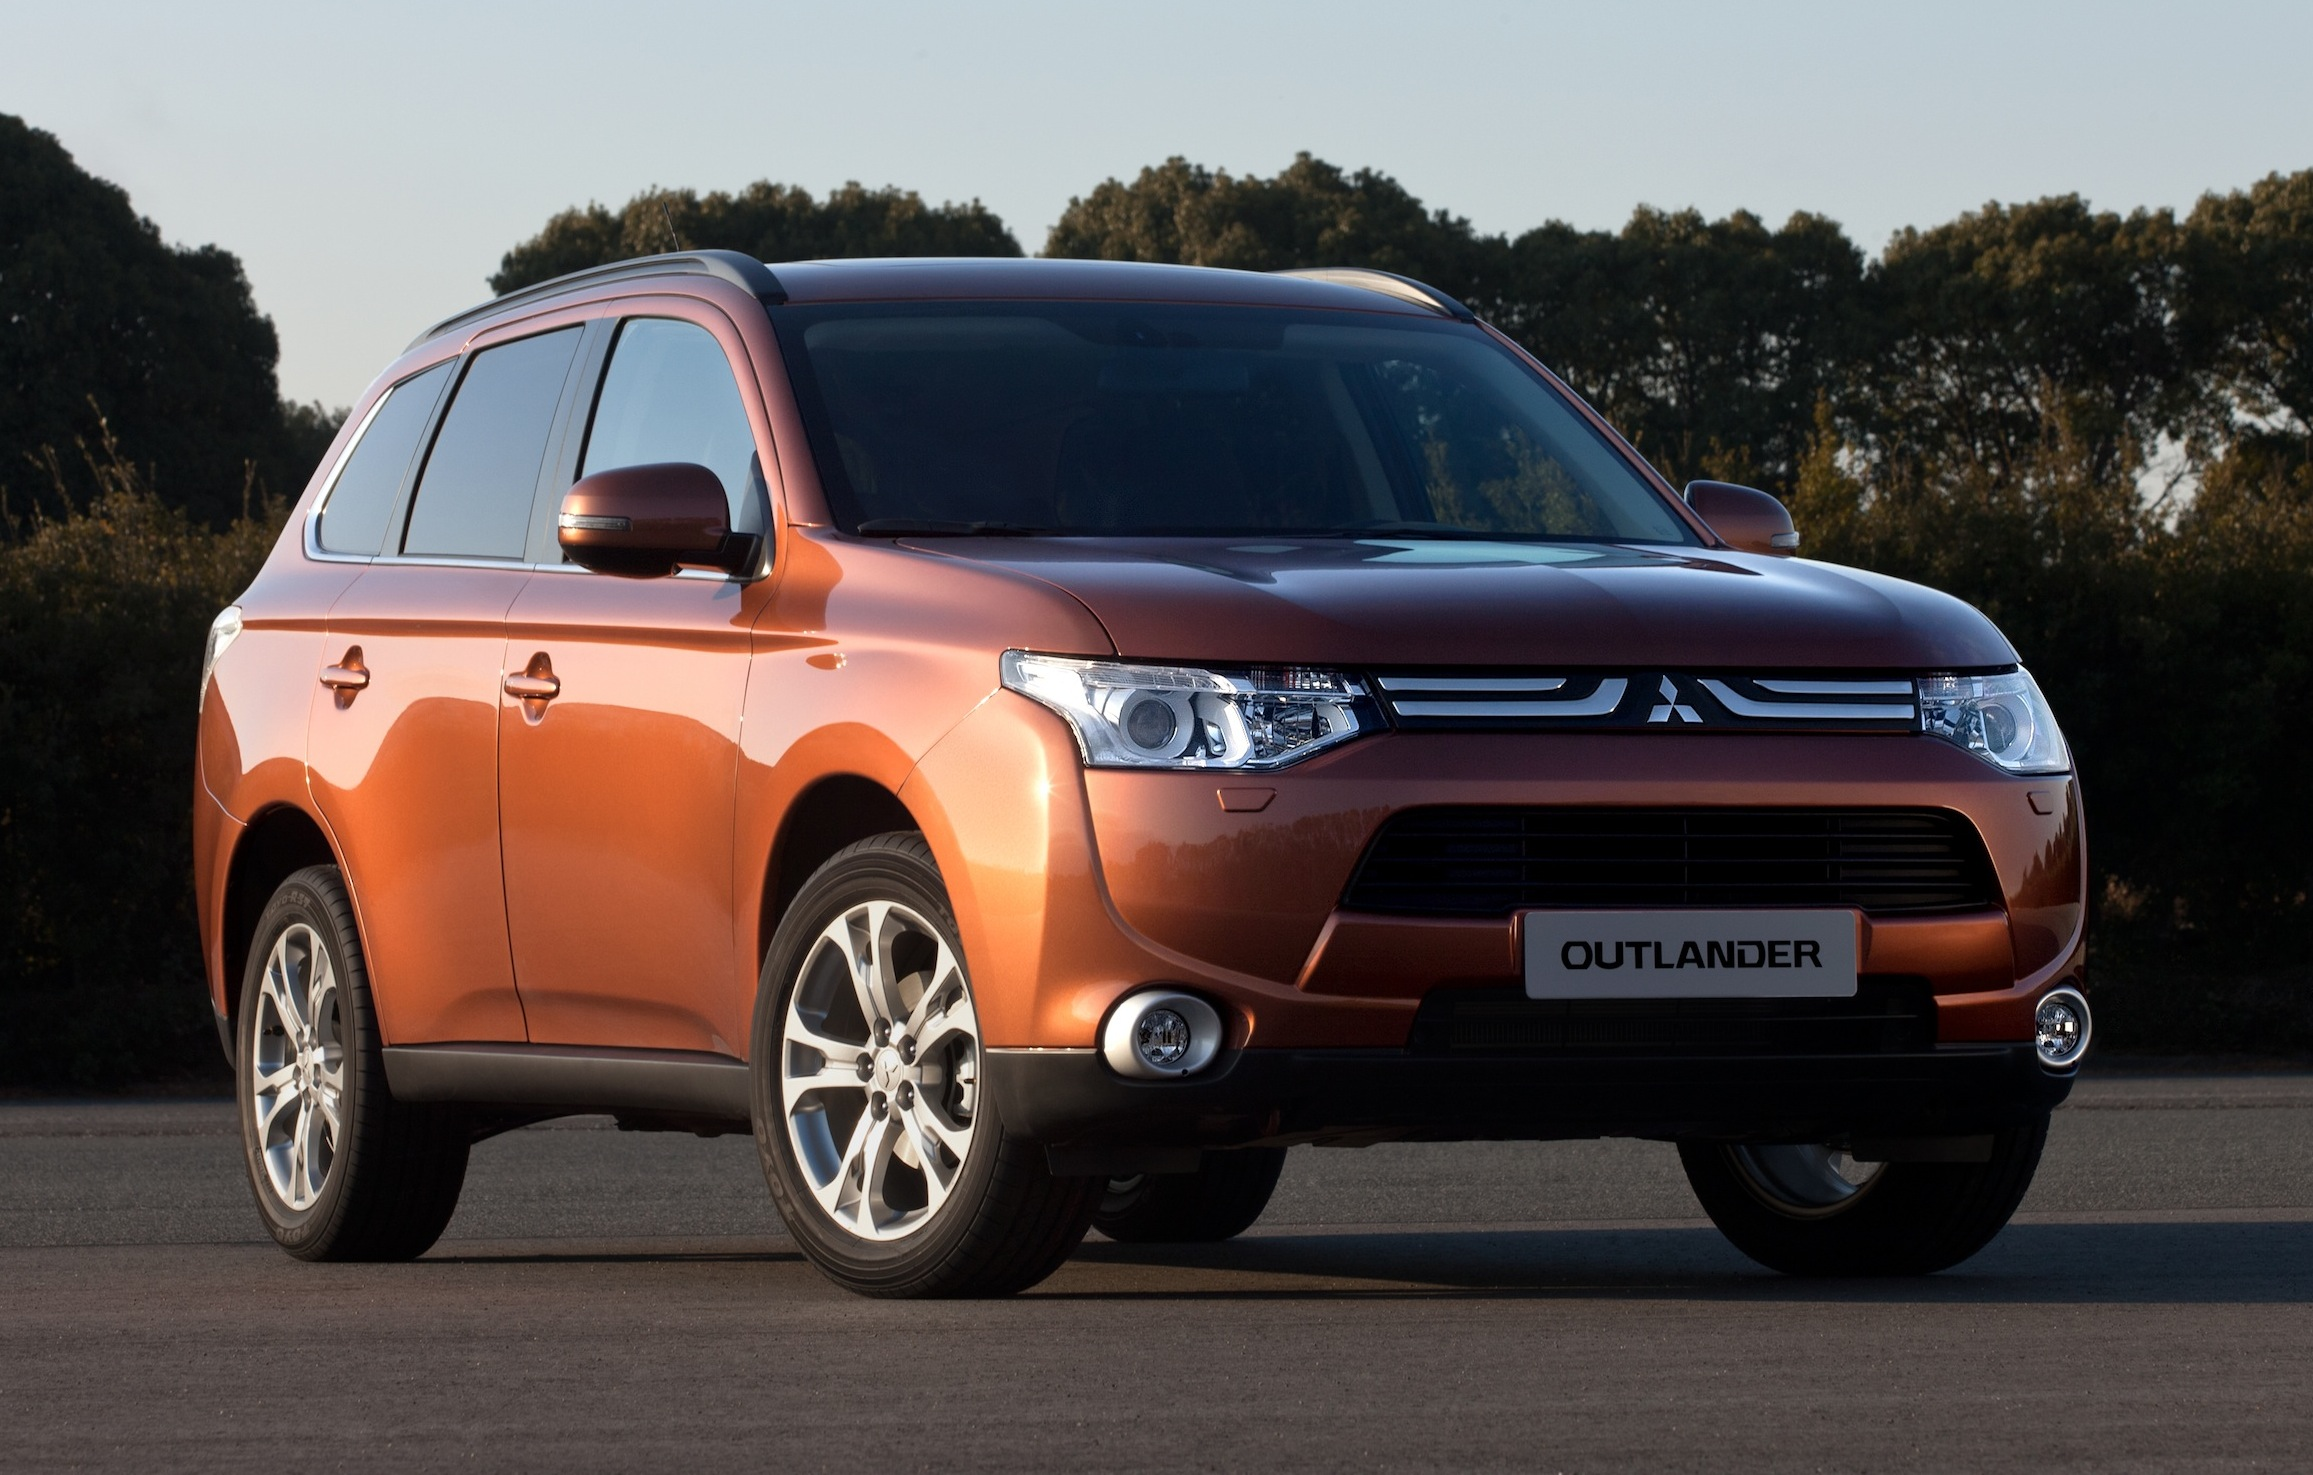 mitsubishi outlander new generation suv revealed photos. Black Bedroom Furniture Sets. Home Design Ideas